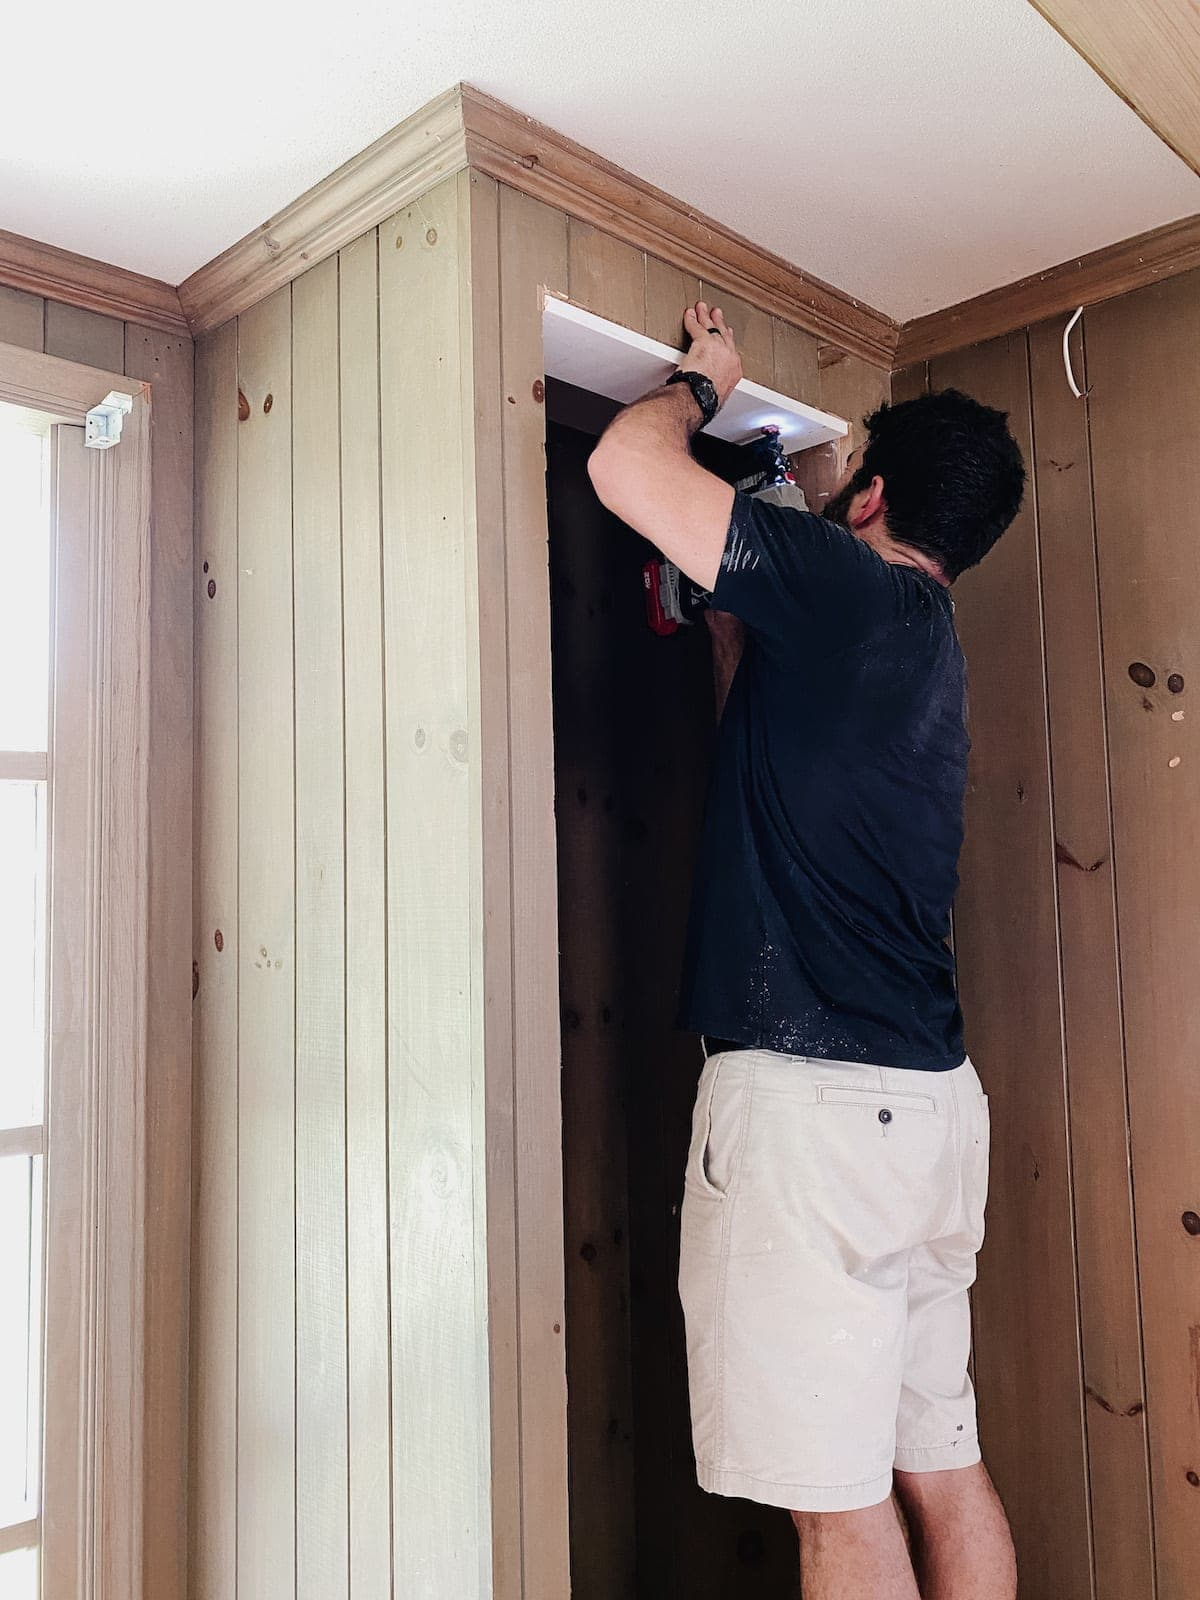 adding a frame to closet opening to make built-in shelves